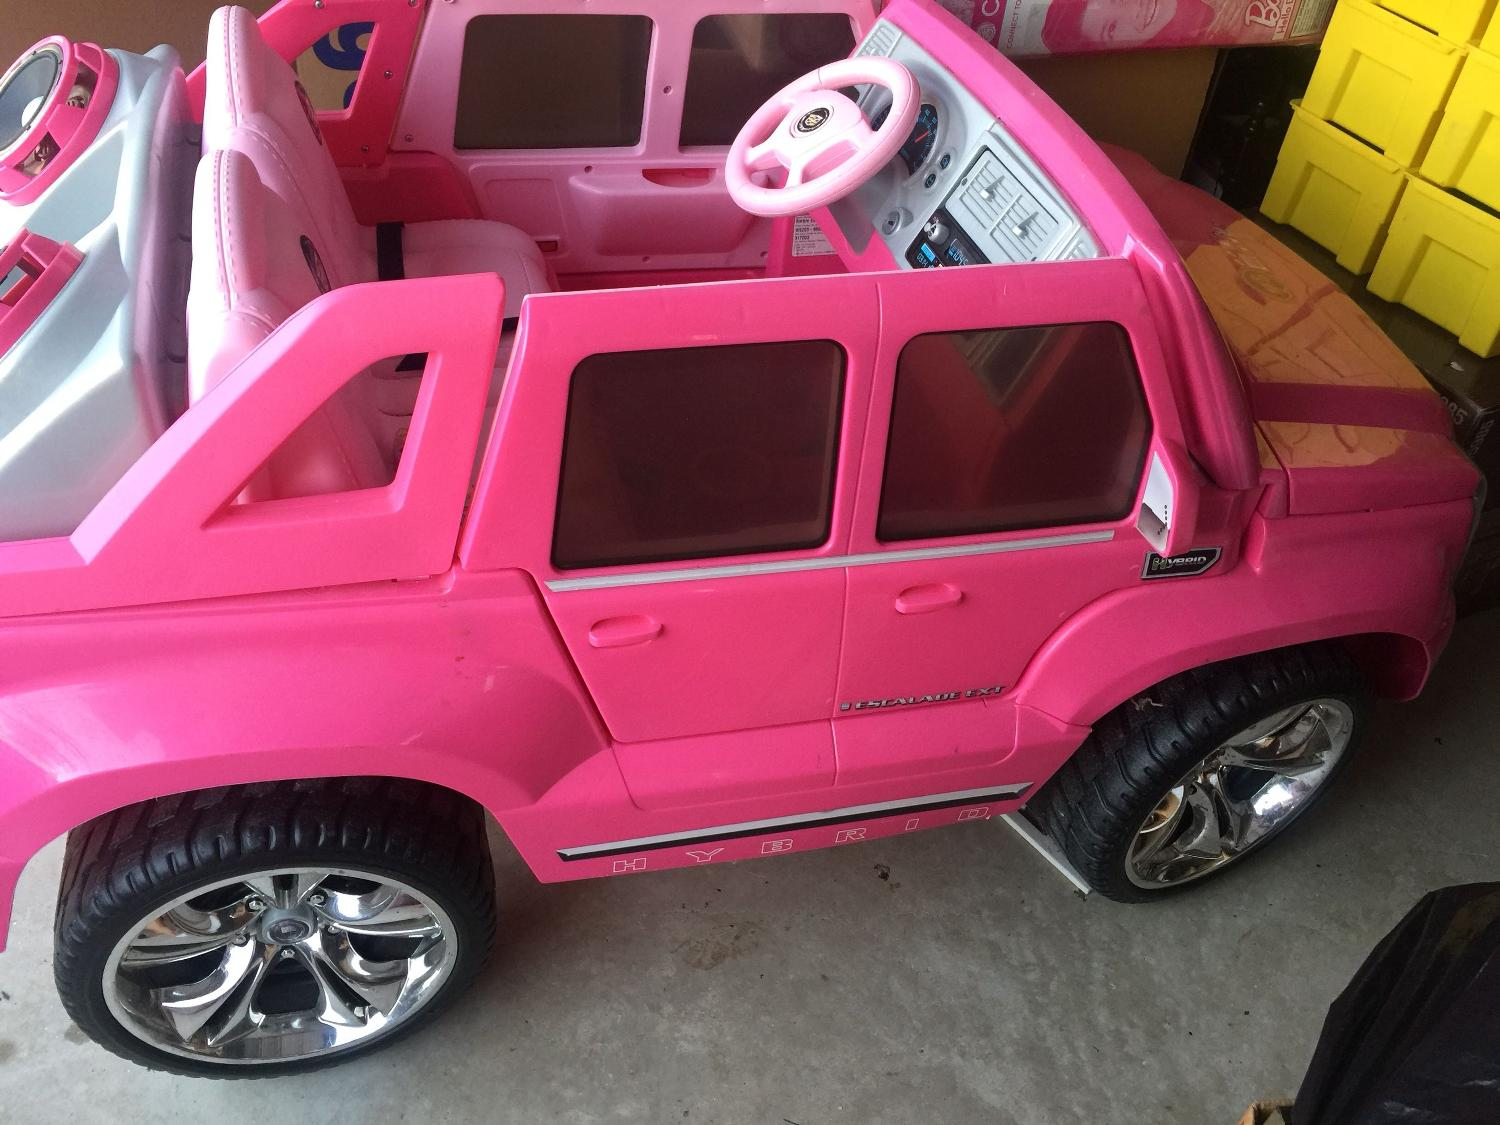 best pink kids escalade for sale in new braunfels texas for 2020 pink kids escalade